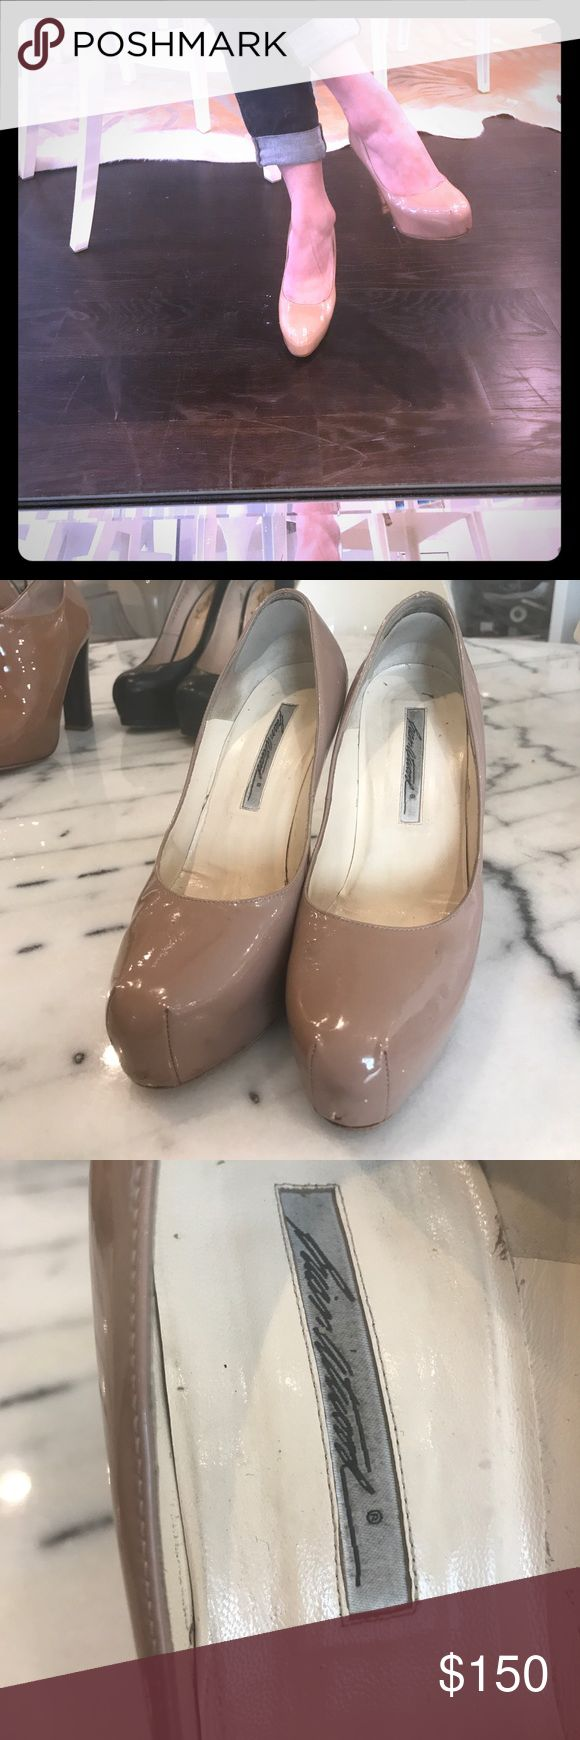 Brian Atwood Maniac pumps in nude patent leather Brian Atwood 'maniac' pumps in nude patent leather Shoes Heels